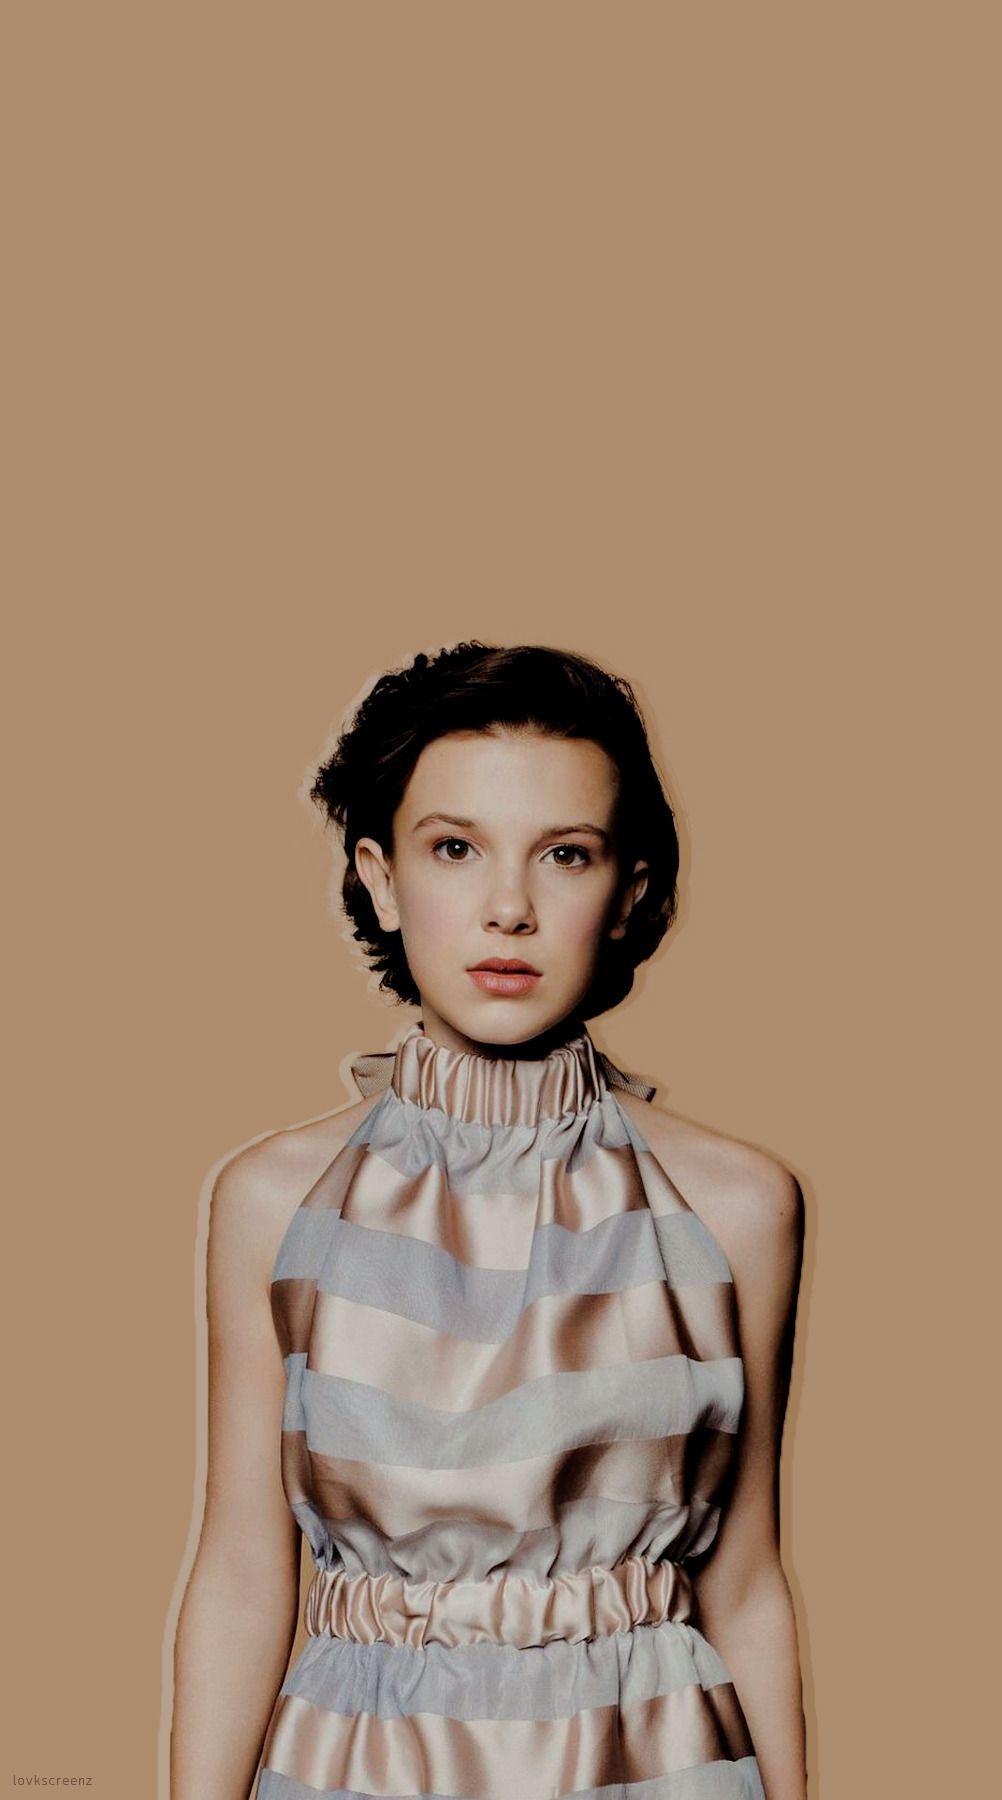 Millie Bobby Brown Wallpapers Tumblr Millie Bobby Brown Bobby Brown Girl